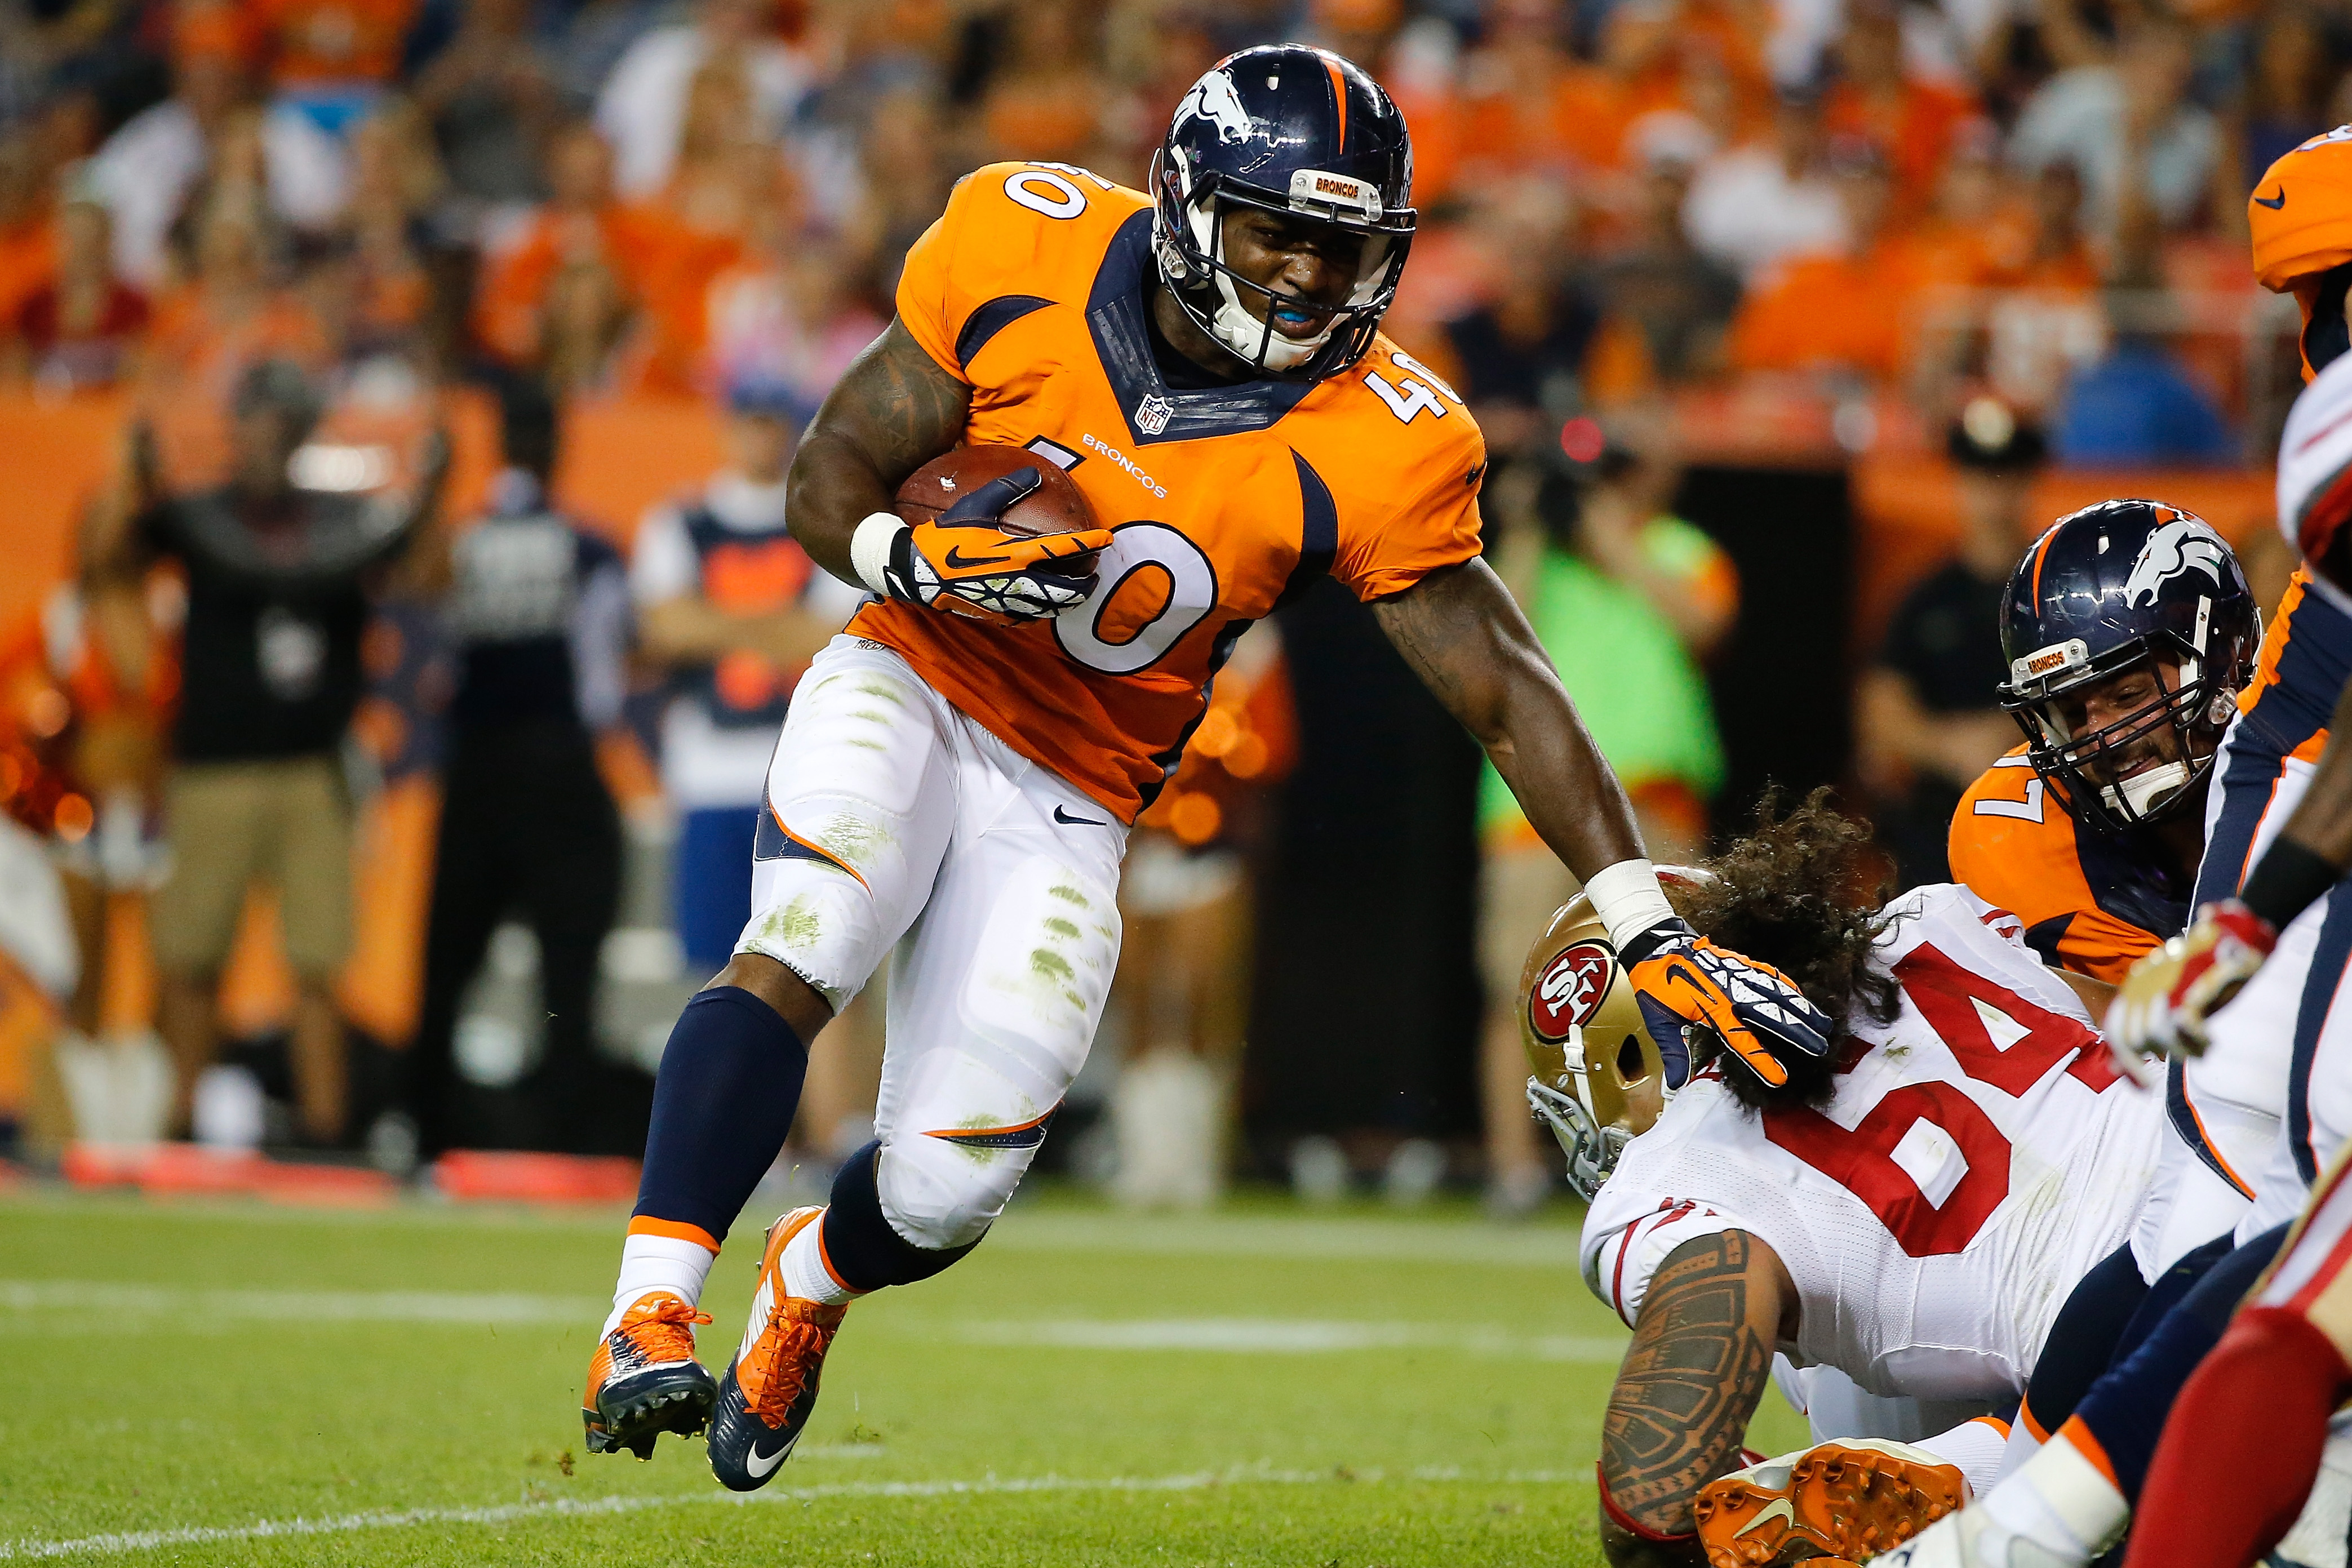 Running back Juwan Thompson #40 of the Denver Broncos rushes into the endzone for a touchdown against the San Francisco 49ers during preseason action at Sports Authority Field at Mile High on August 29, 2015 in Denver, Colorado. The Broncos defeated the 49ers 19-12.  (Photo by Doug Pensinger/Getty Images)